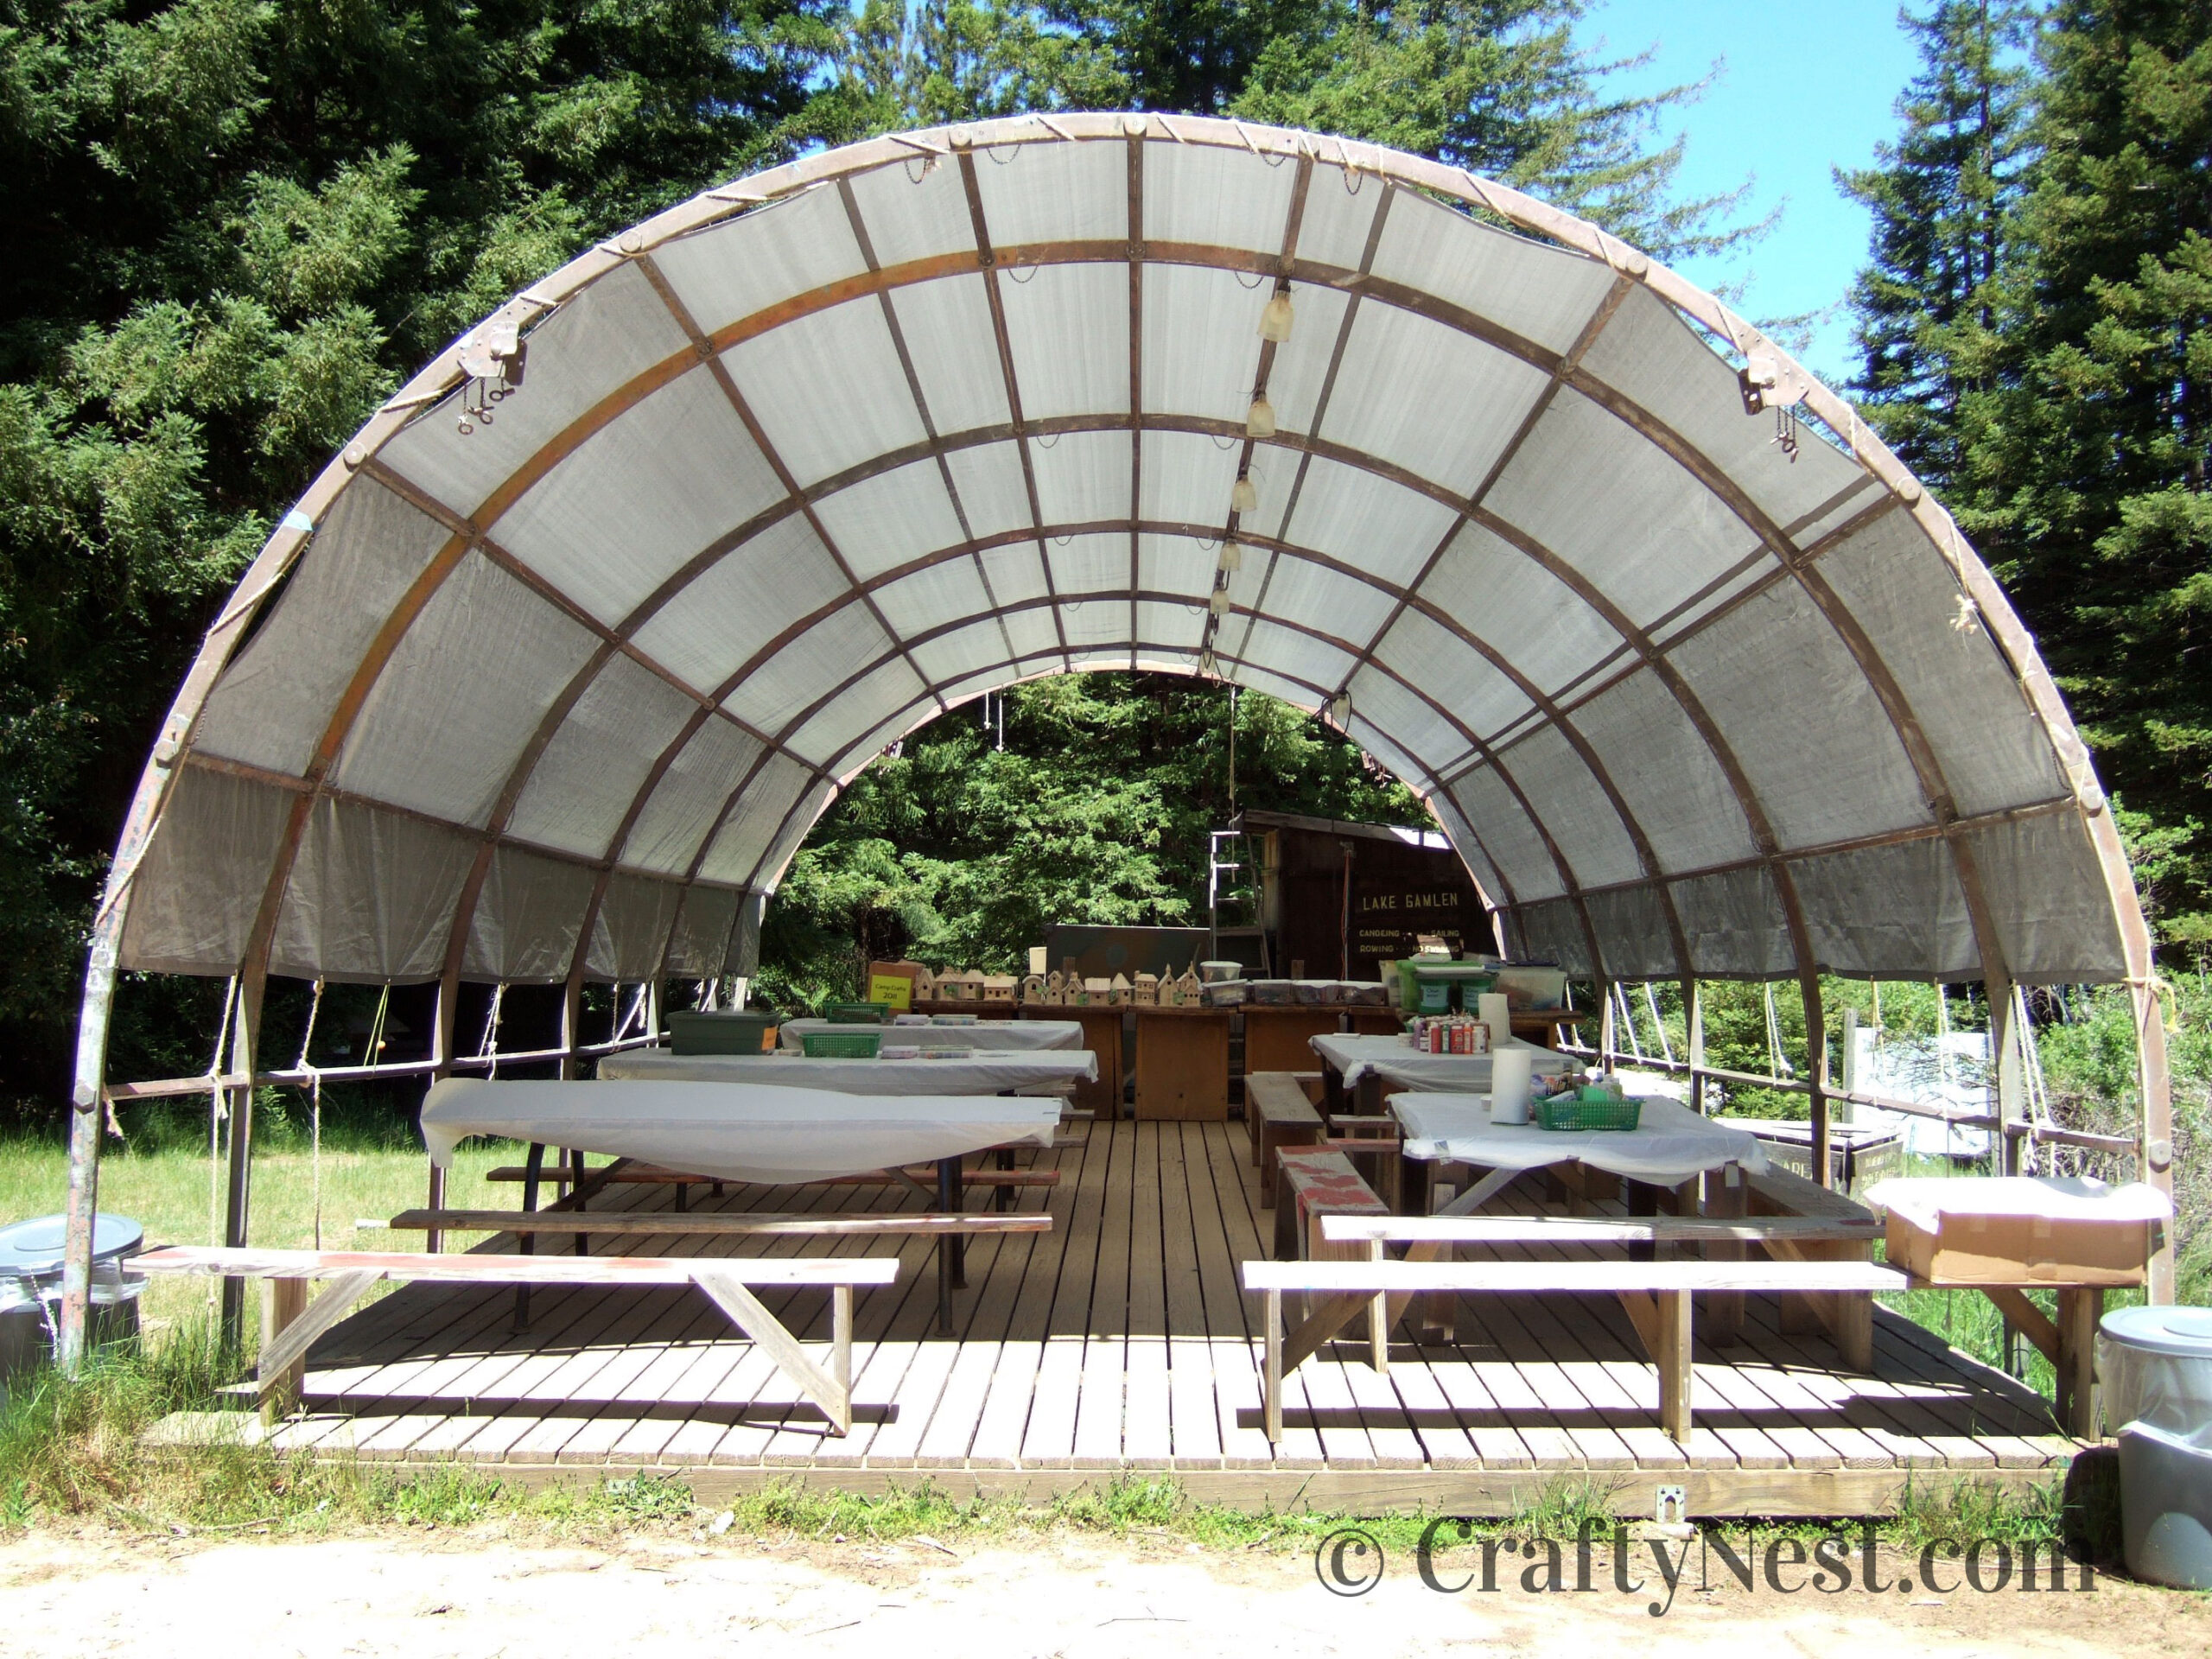 Quonset hut craft area, photo